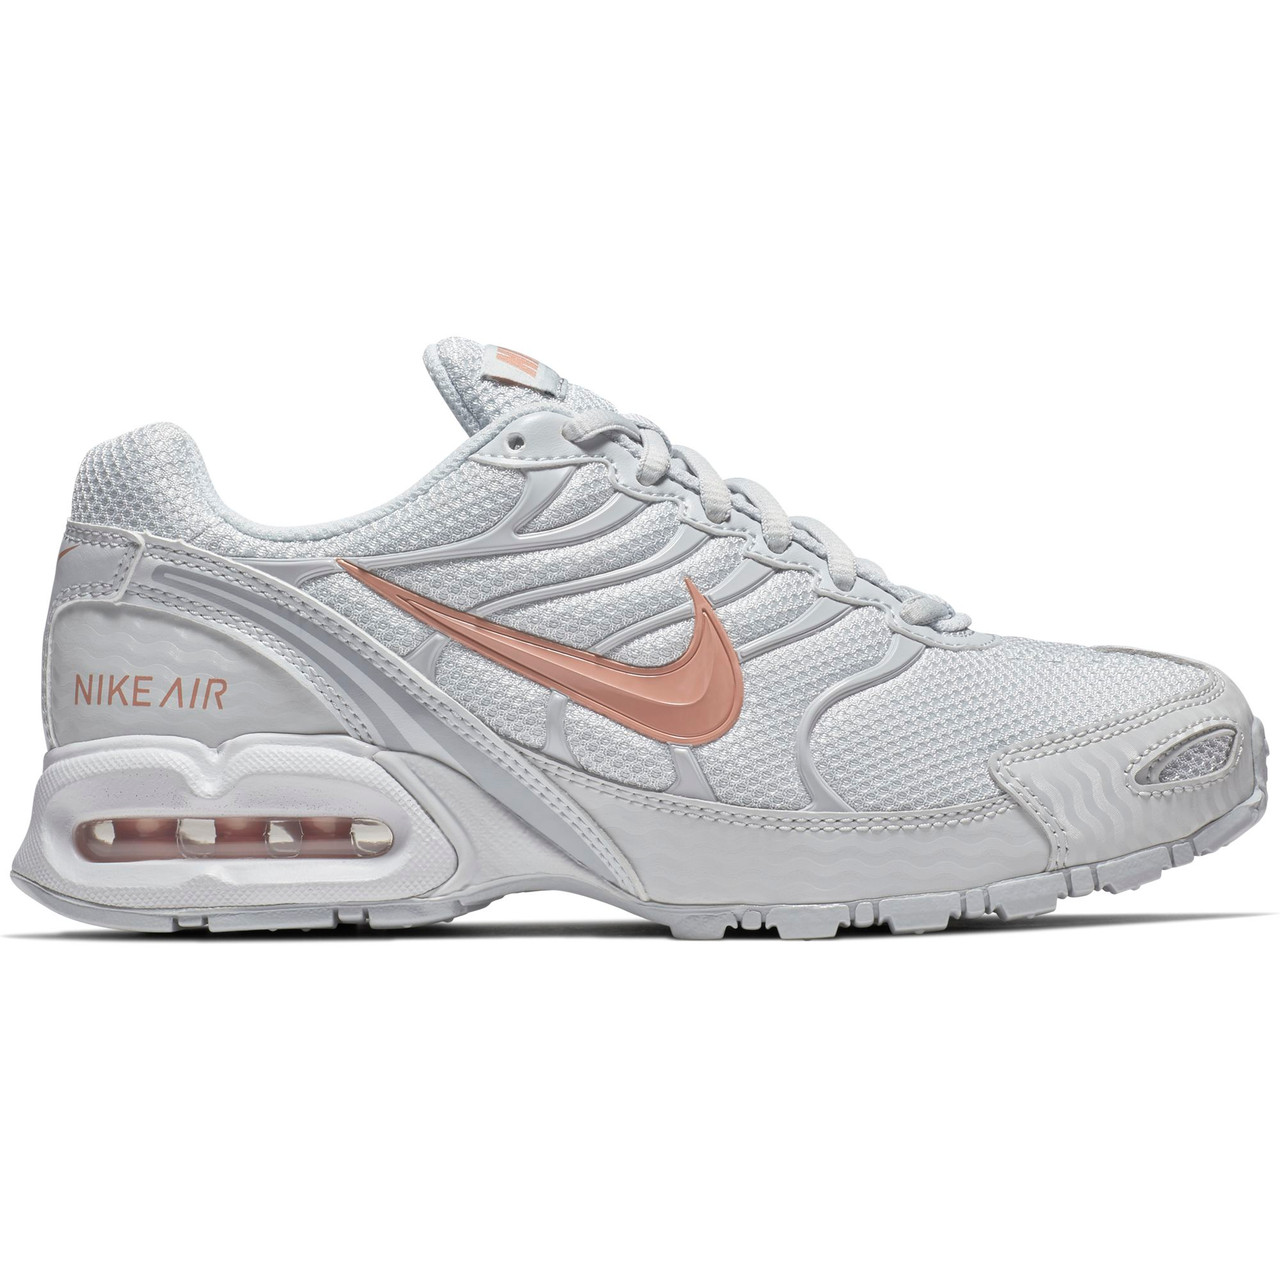 half off a3743 90657 Women s Nike Air Max Torch 4 Running Shoe - Sieverts Sporting Goods